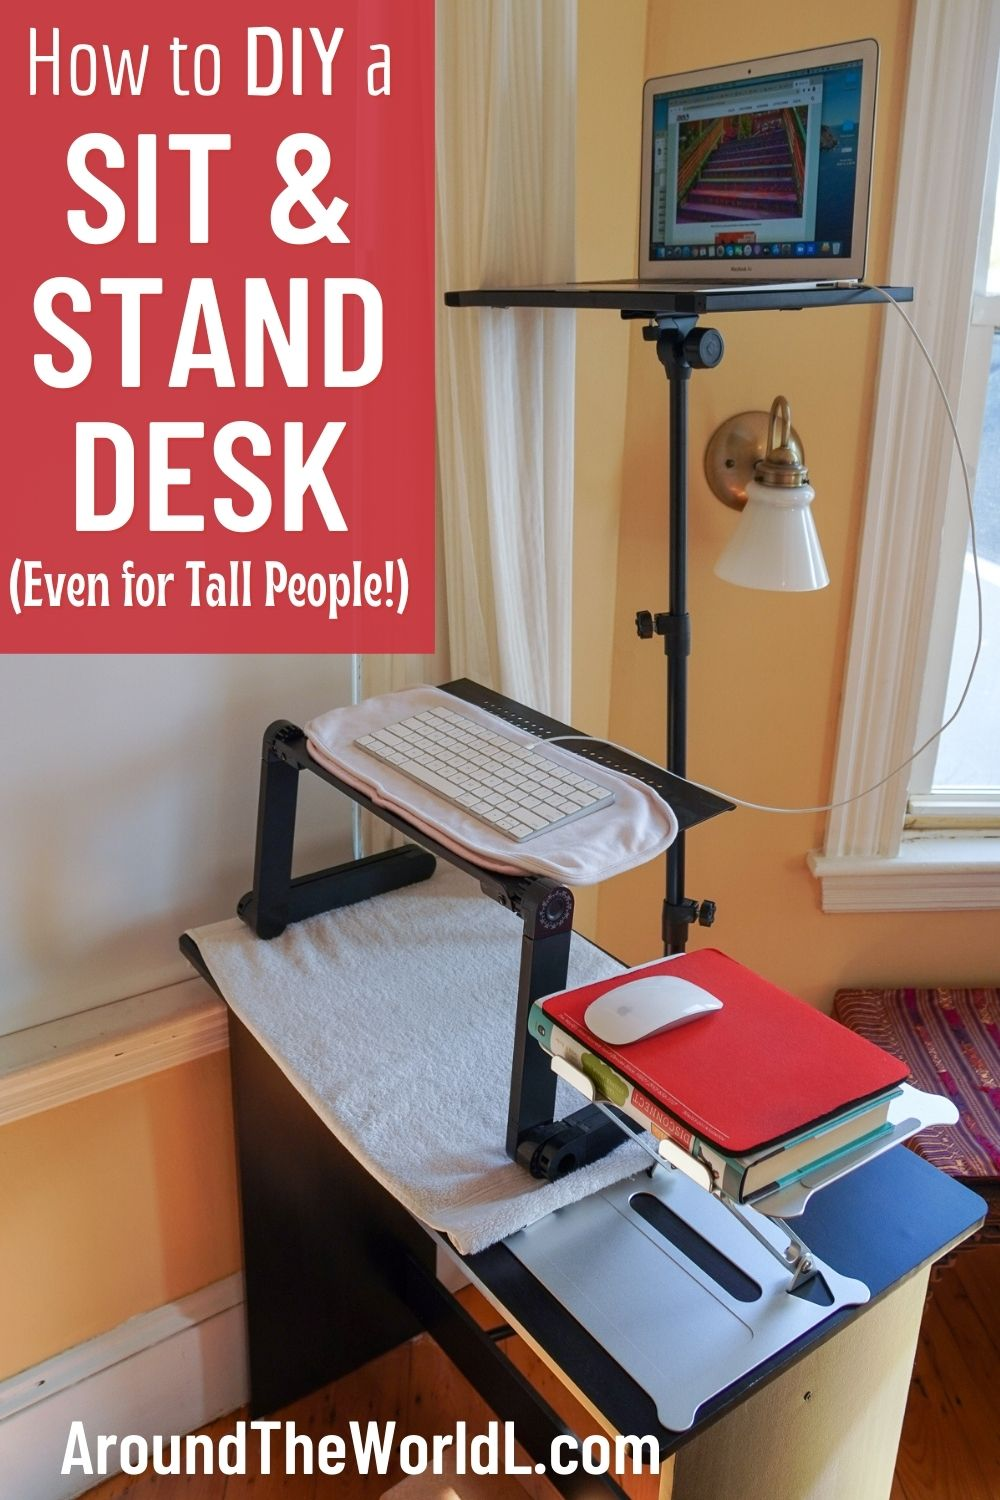 How to DIY a sit standing desk